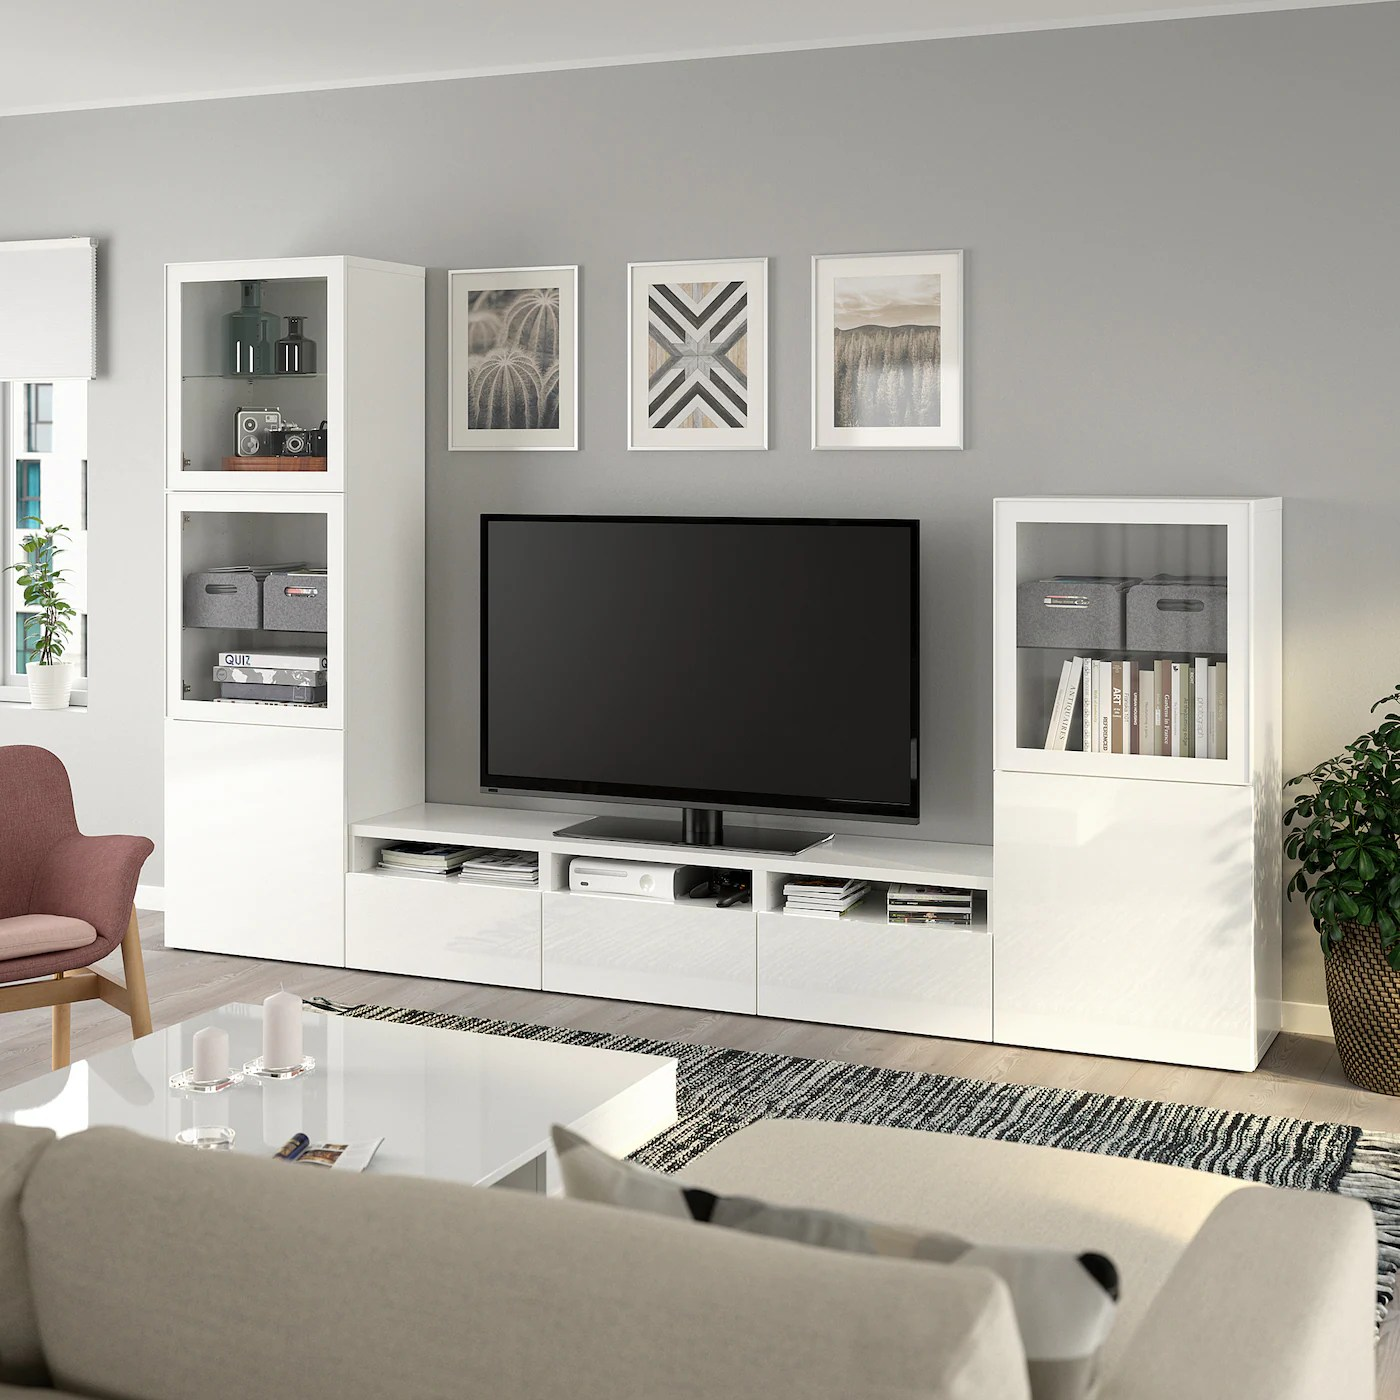 Tv In Wand BestÅ Tv Storage Combination/glass Doors, White, Selsviken High-gloss/white Clear Glass, 300x42x193 Cm. View Now! - Ikea